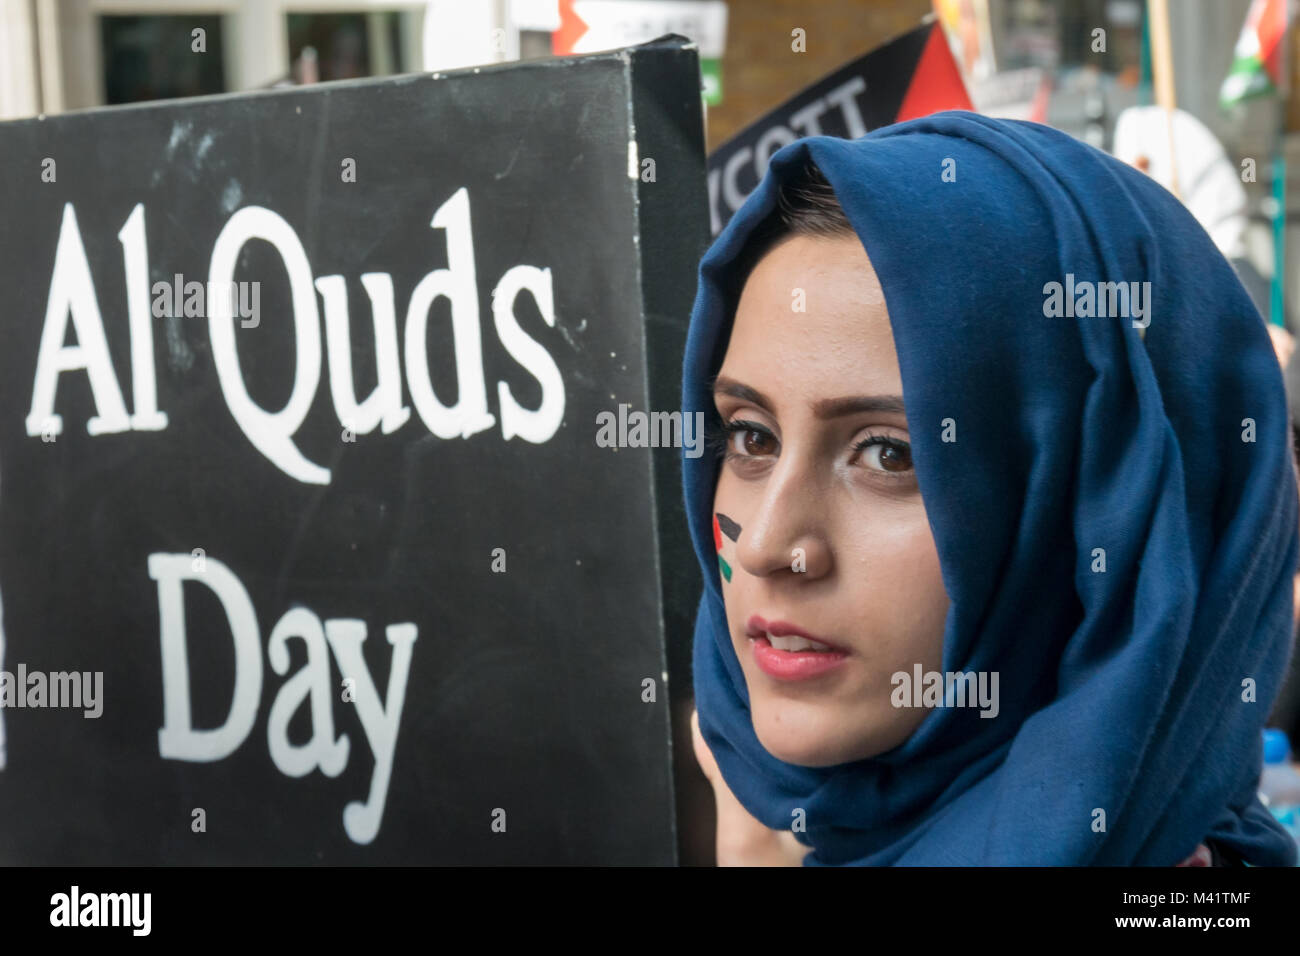 A woman in a blue headscarf with a Palestinian flag painted on her cheek  holds a large board with a message about - Stock Image